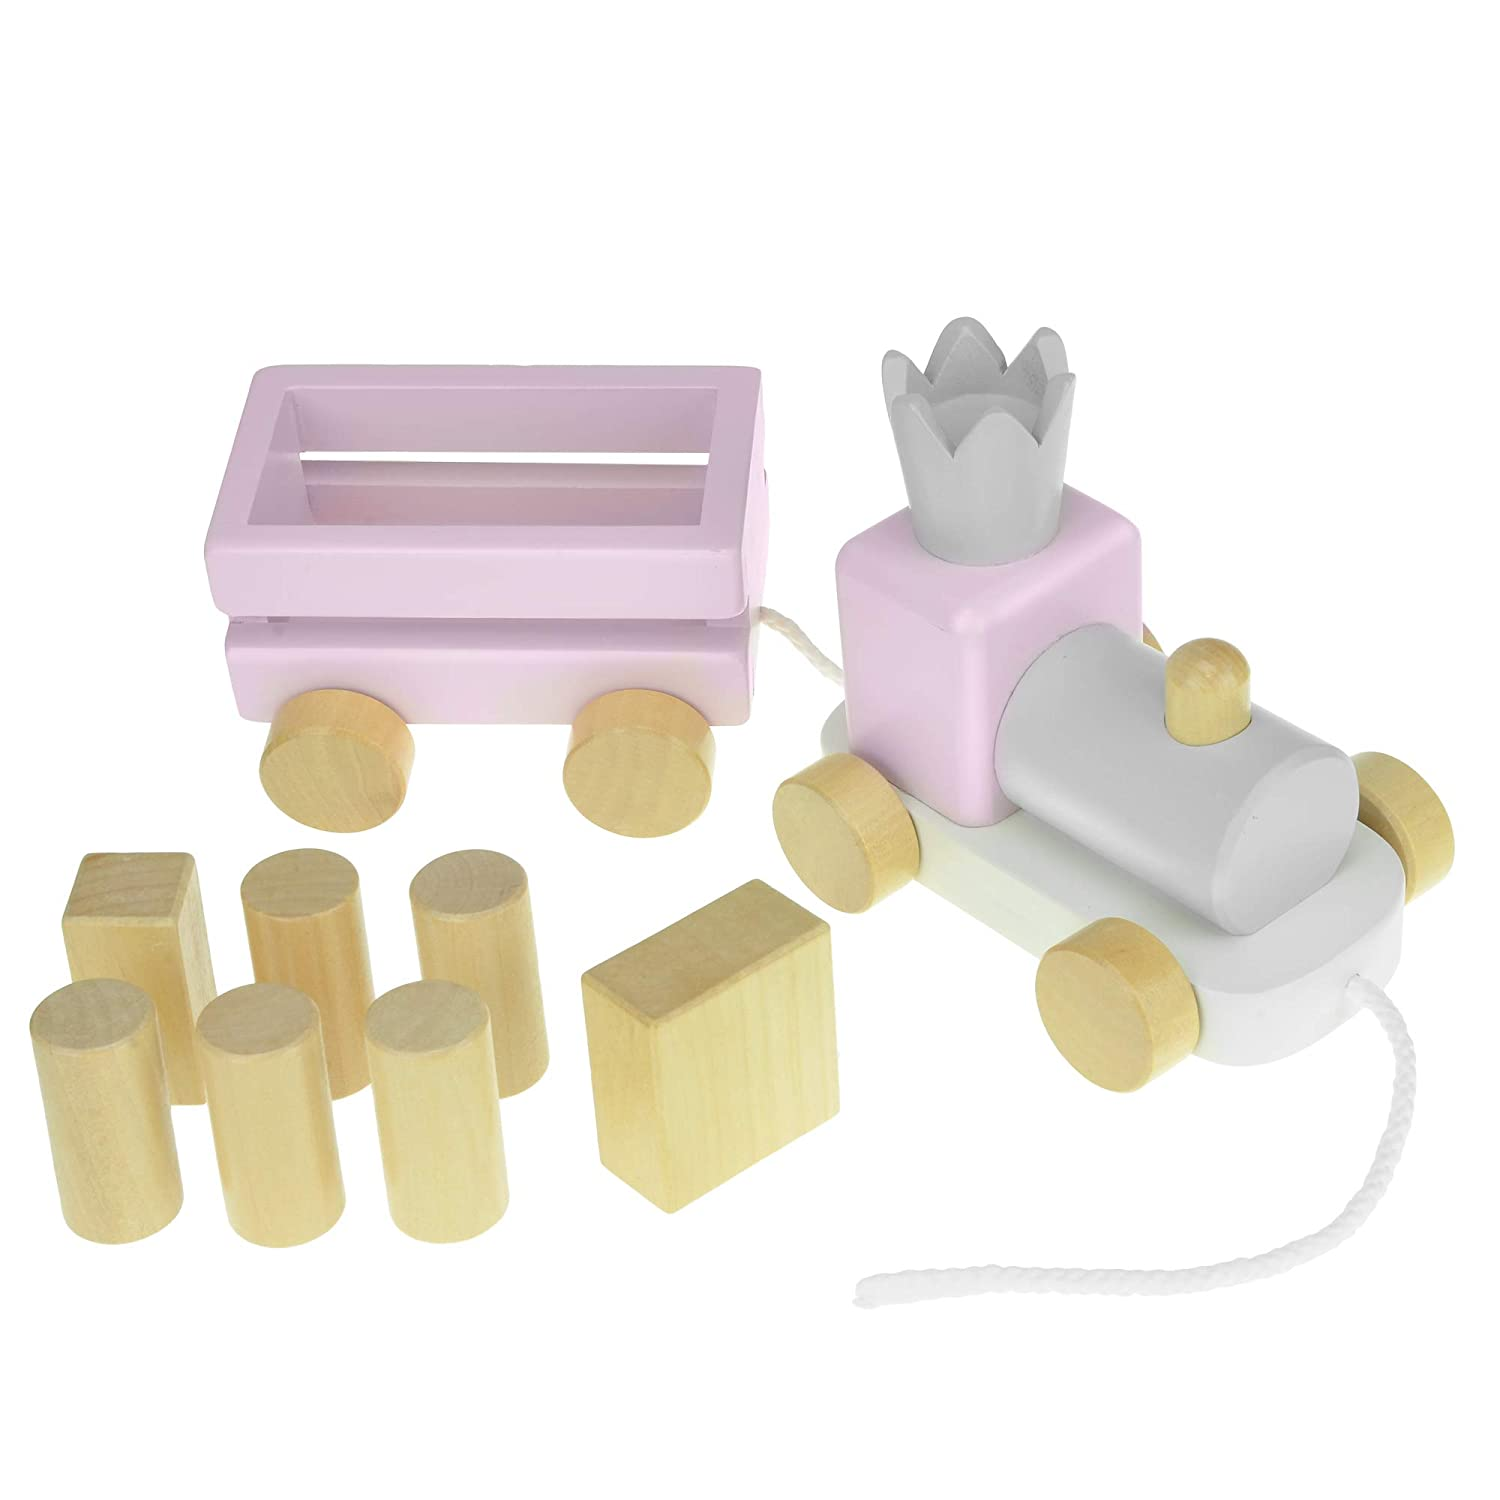 Wooden Pull Along Train Toy for Toddlers 1 Year Old and Up with Wood Blocks Girl - Pink Perfect Toys for A Baby Birthday Gift